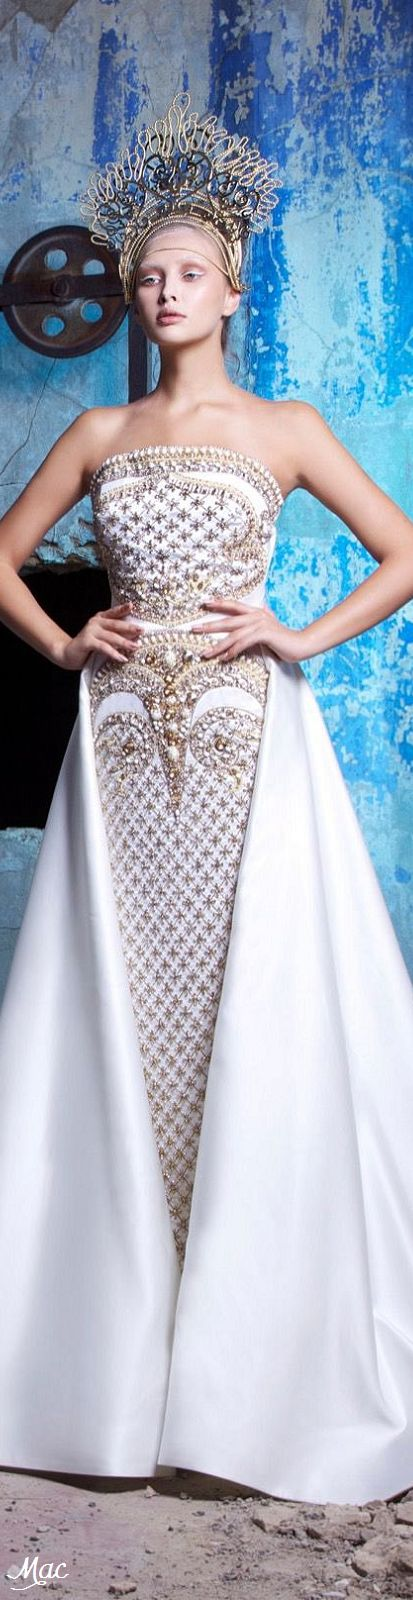 37 best alicia malesani images on pinterest fashion for Haute couture pronunciation